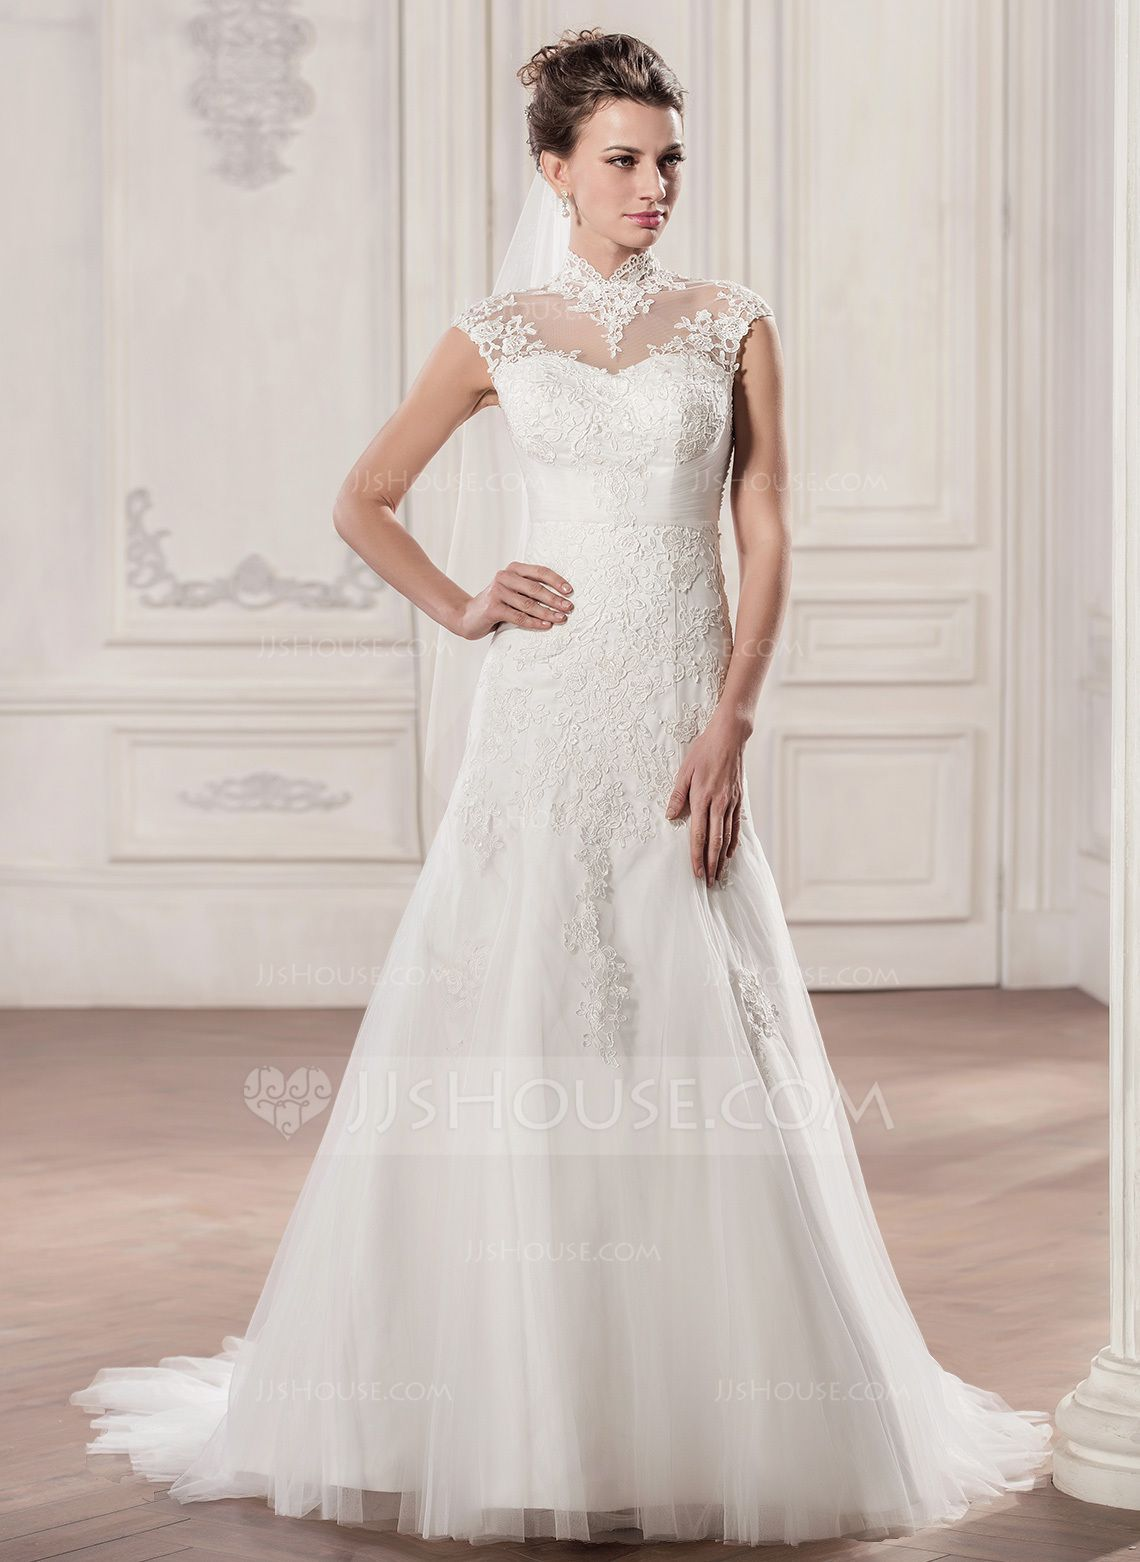 No Train with High Neck Lace Wedding Dress